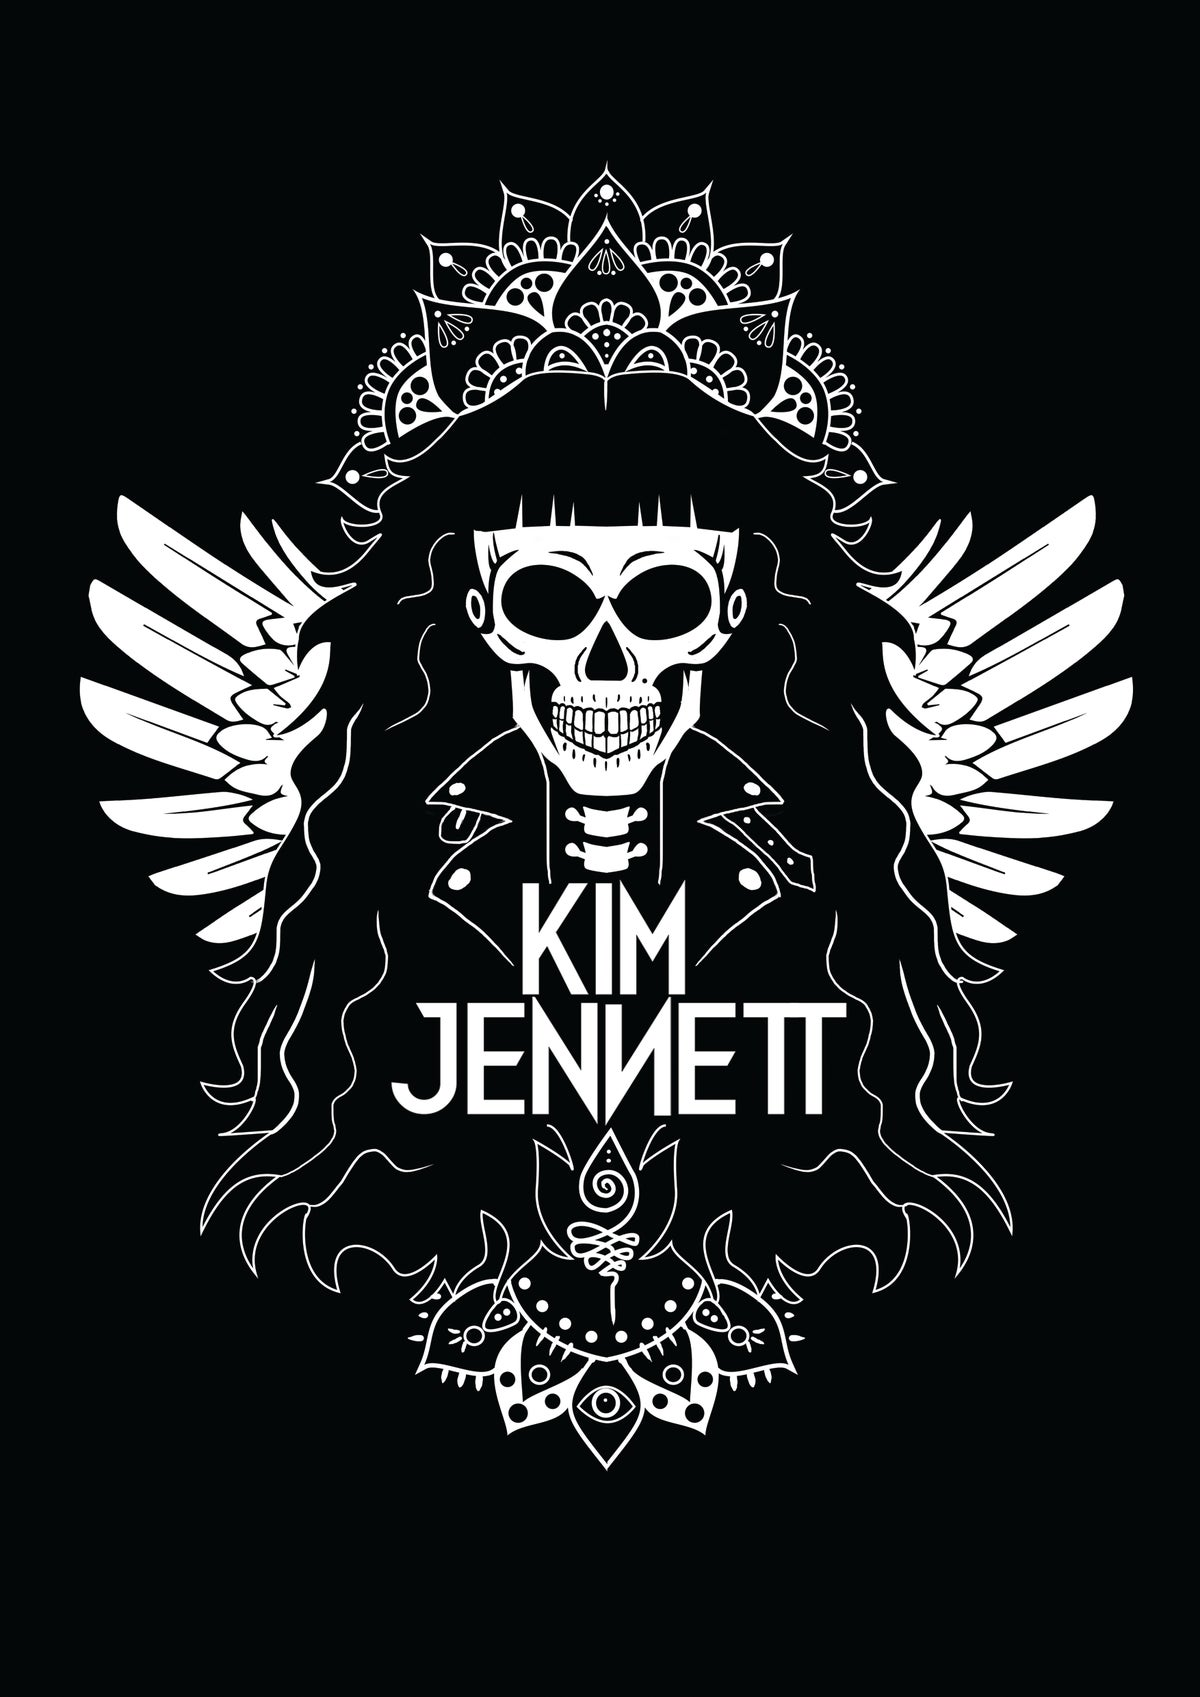 Image of Kim Jennett Signed Poster - Artwork